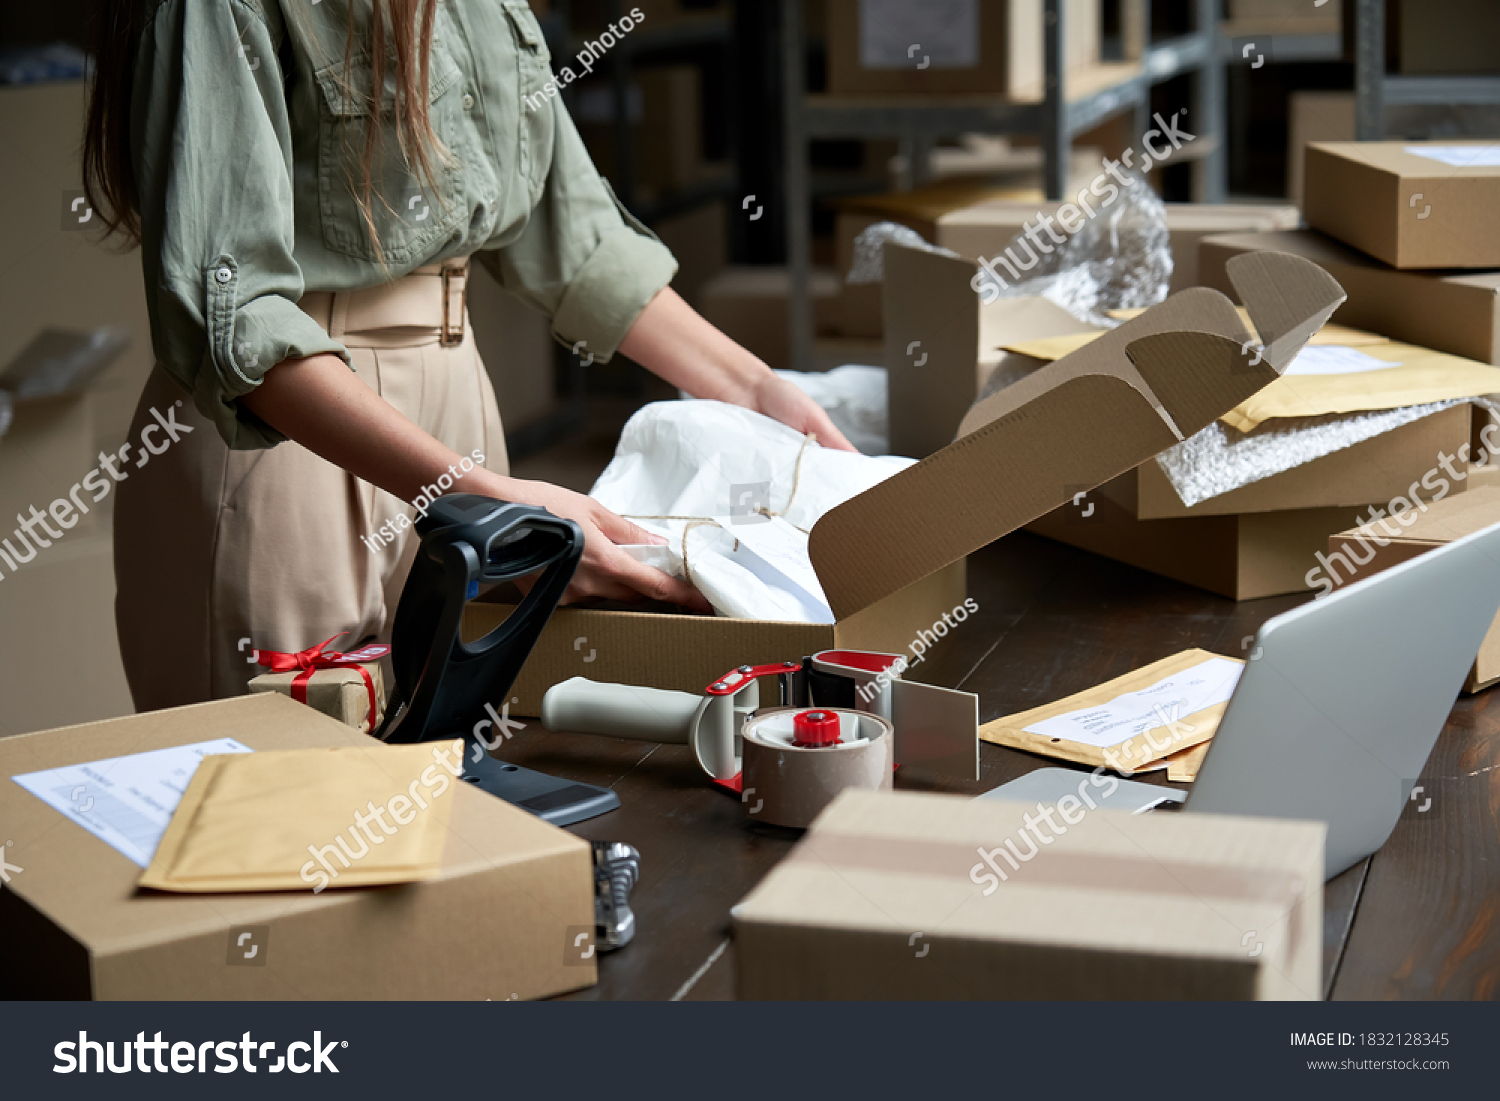 Closeup view of female online store small business owner seller entrepreneur packing package post shipping box preparing delivery parcel on table. Ecommerce dropshipping shipment service concept. #1832128345